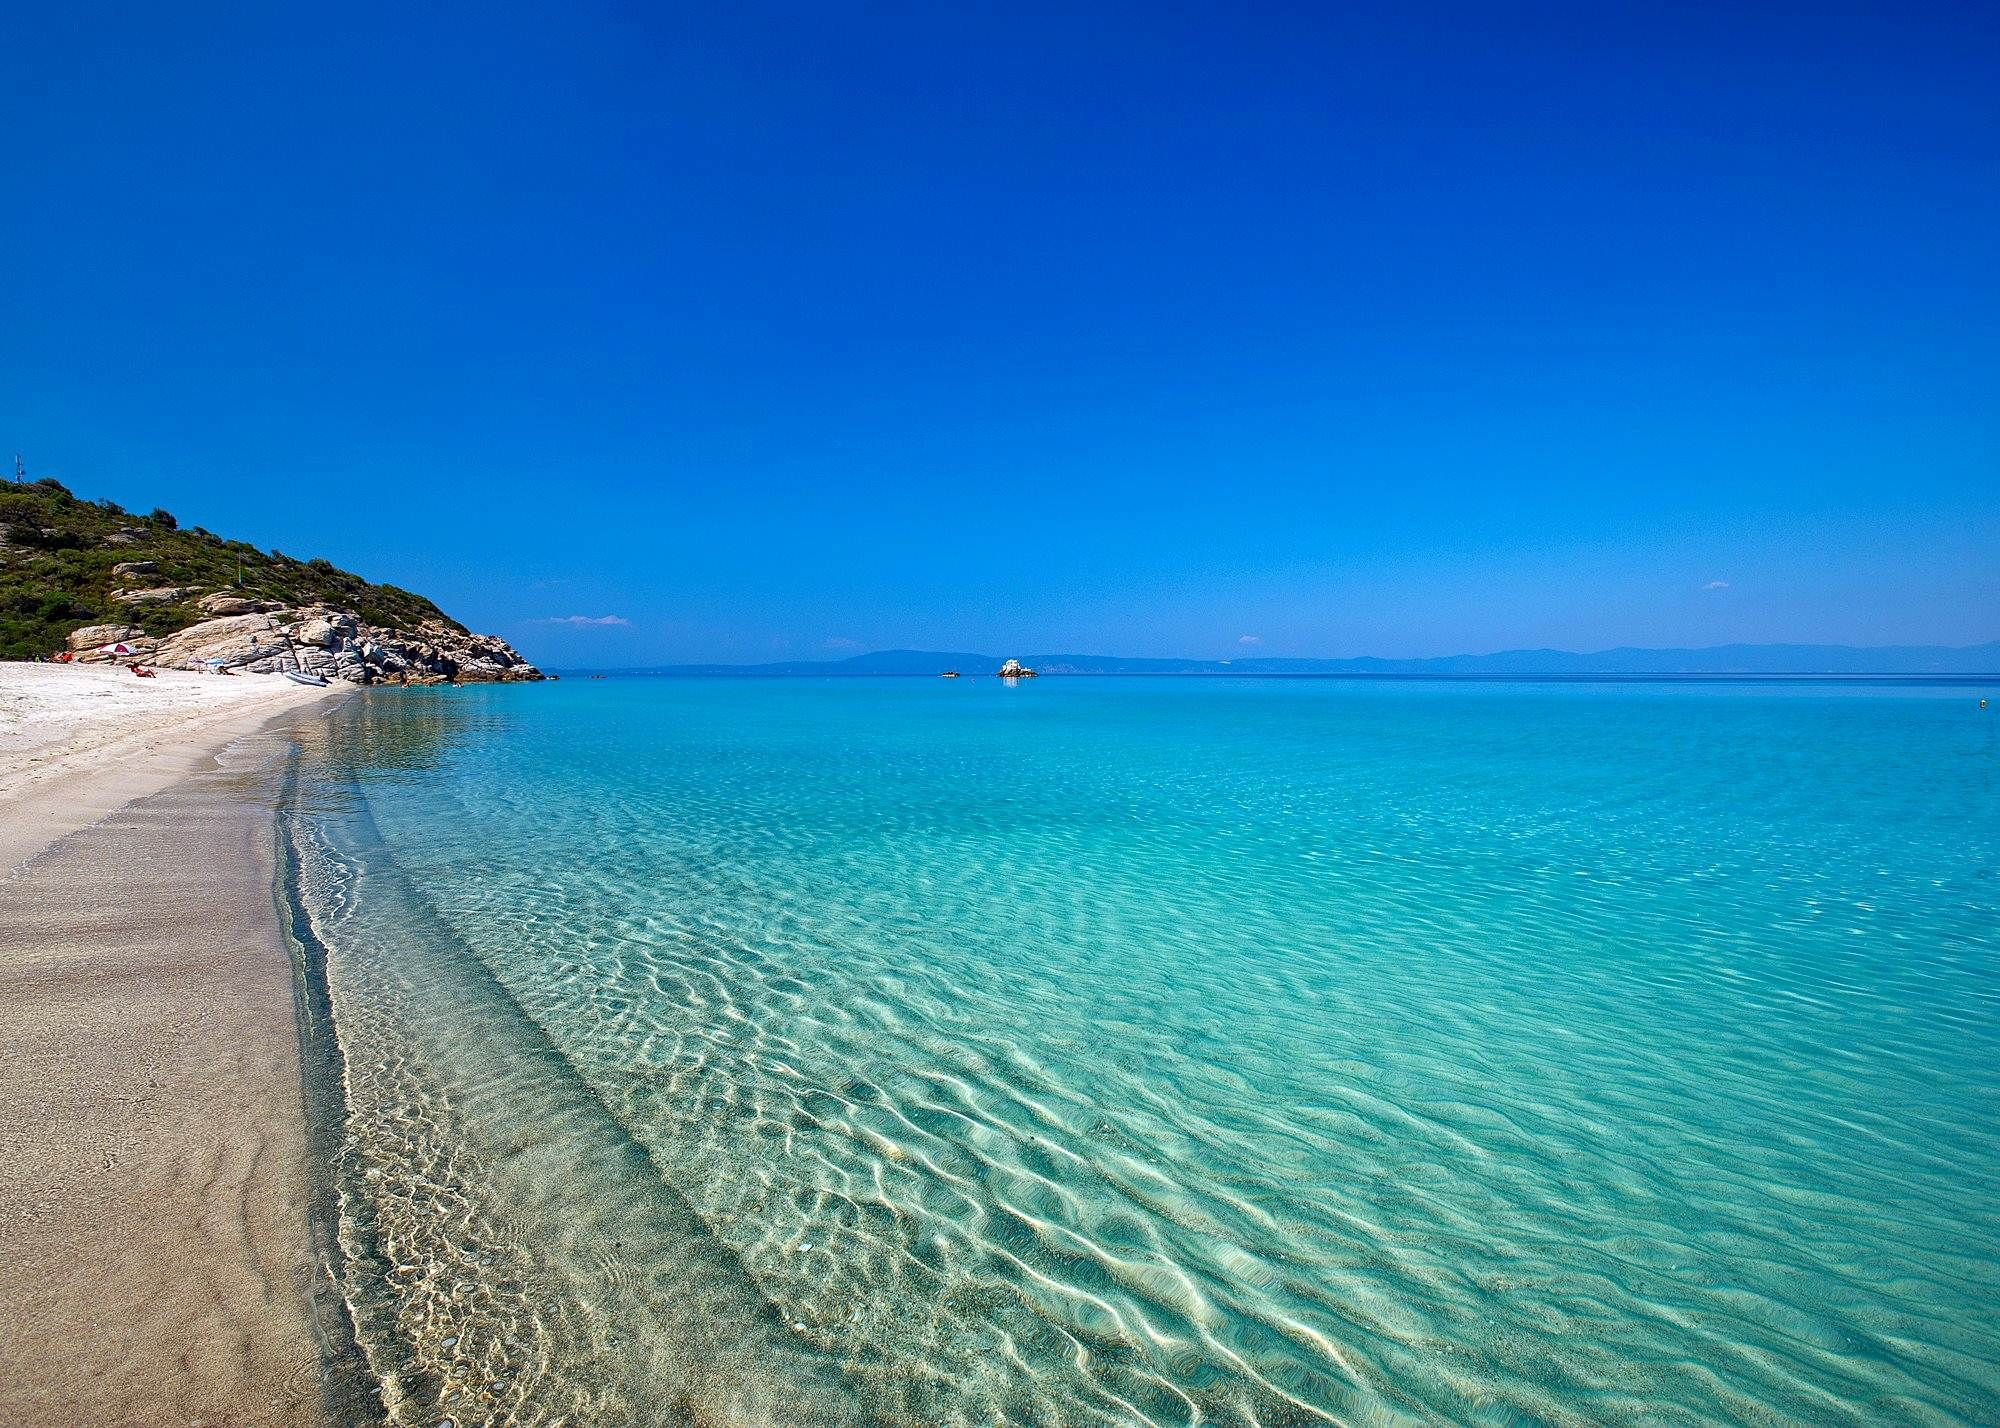 Lovely Summer Beach Paradise Wallpaper Hd Desktop | HD Wallpapers, HD Images, Art  Photos.